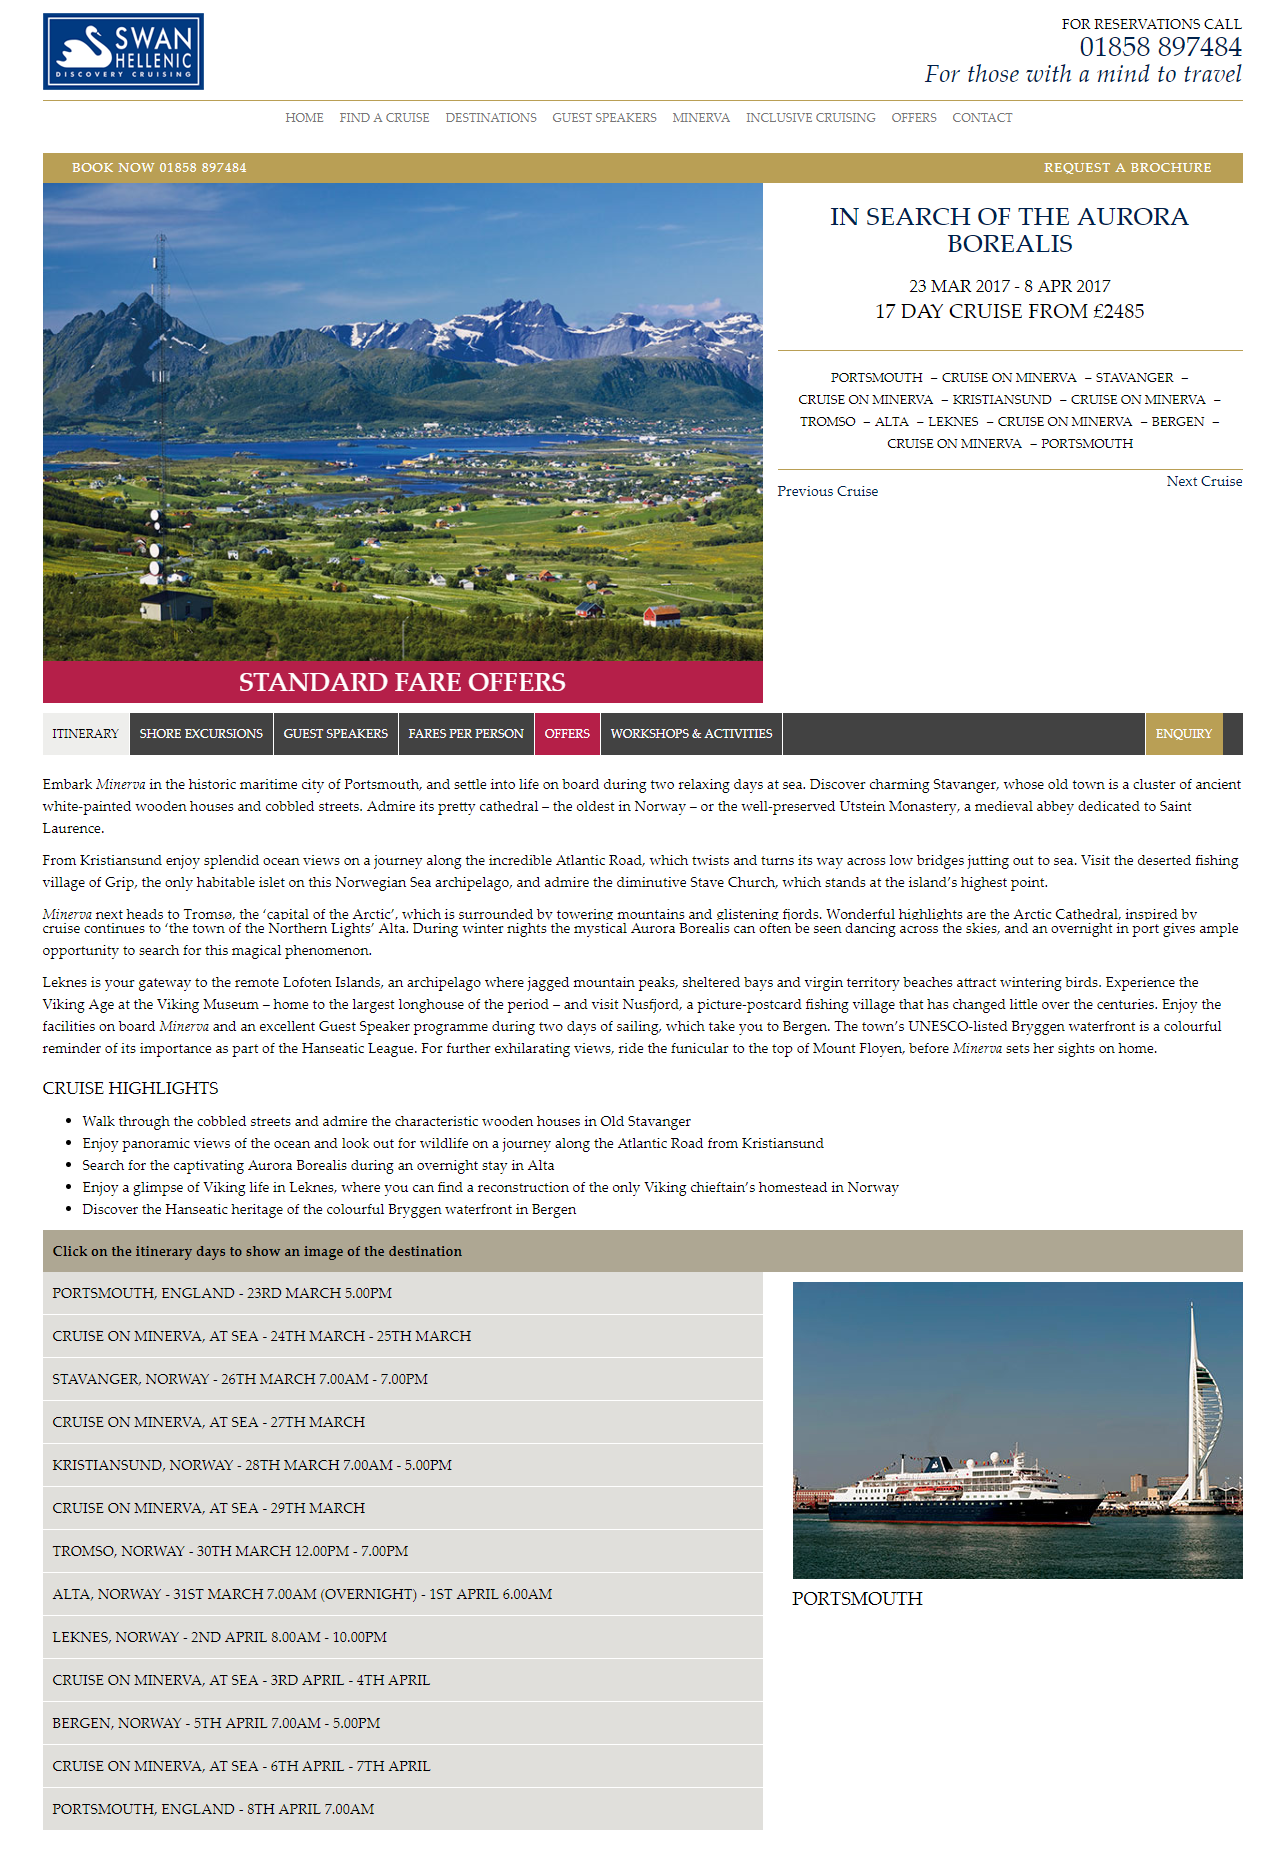 Cruise page